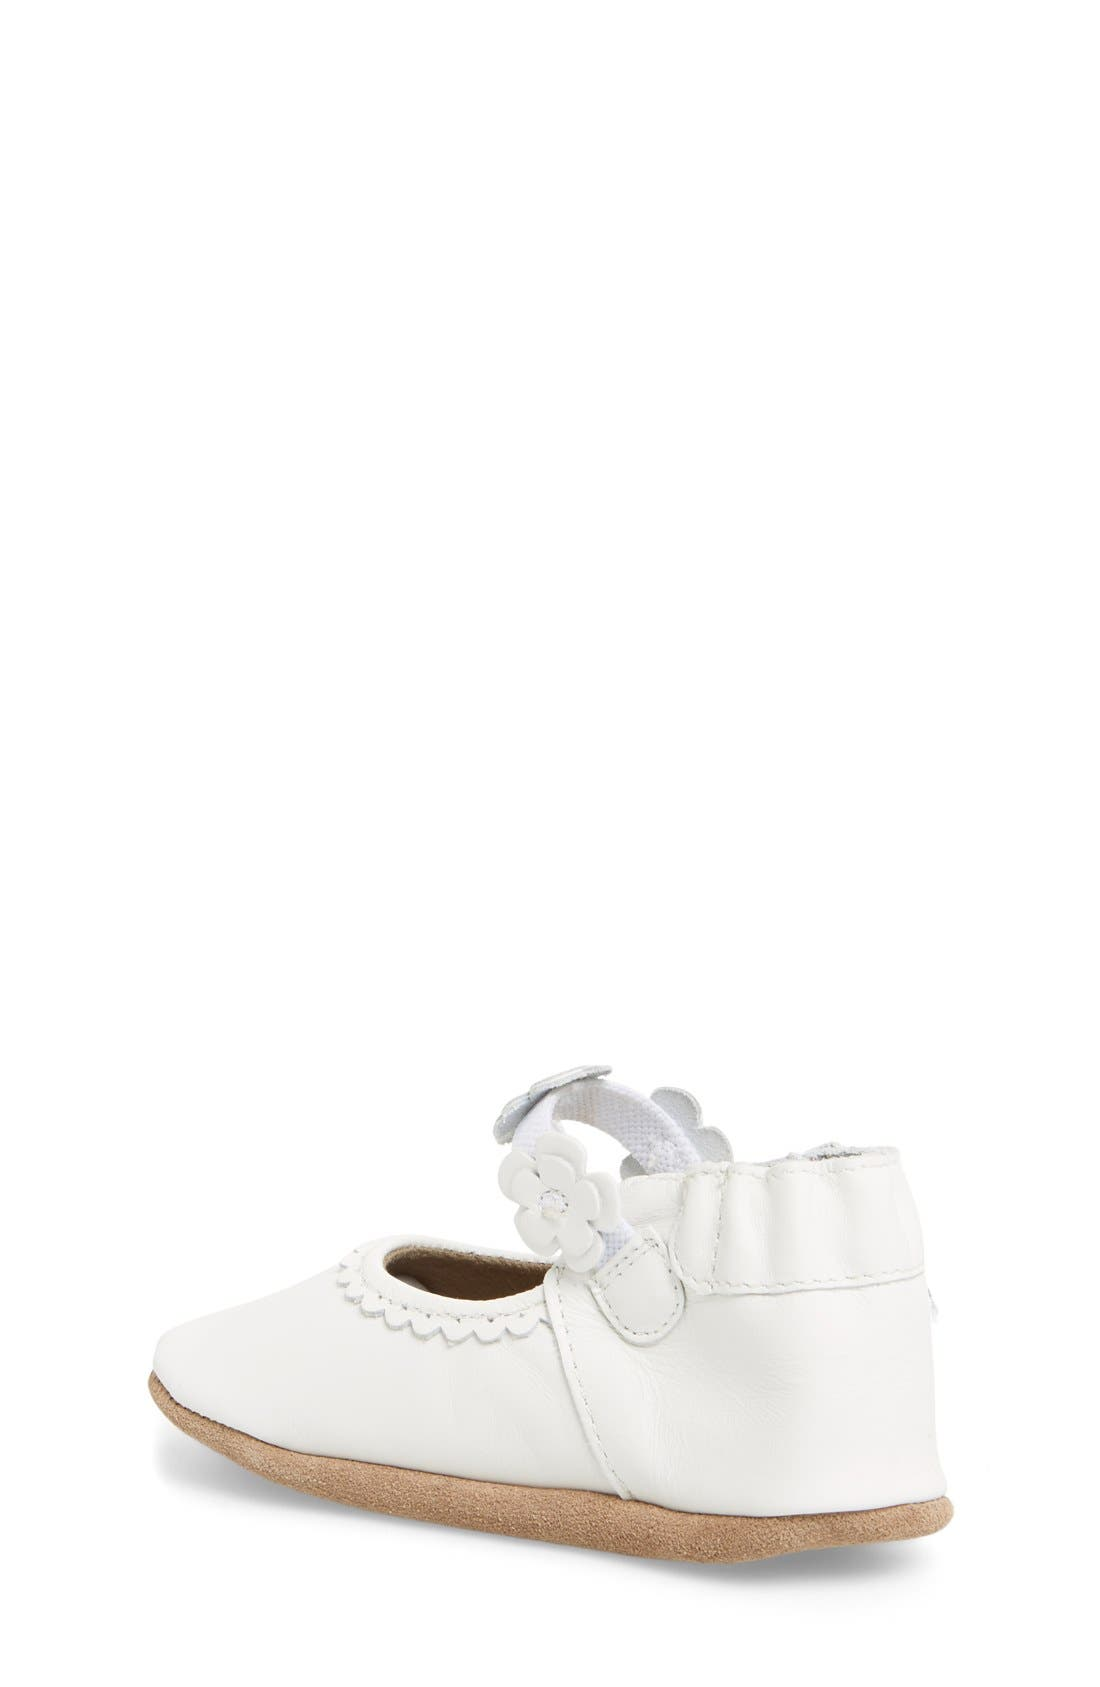 'Claire' Mary Jane Crib Shoe,                             Alternate thumbnail 2, color,                             100